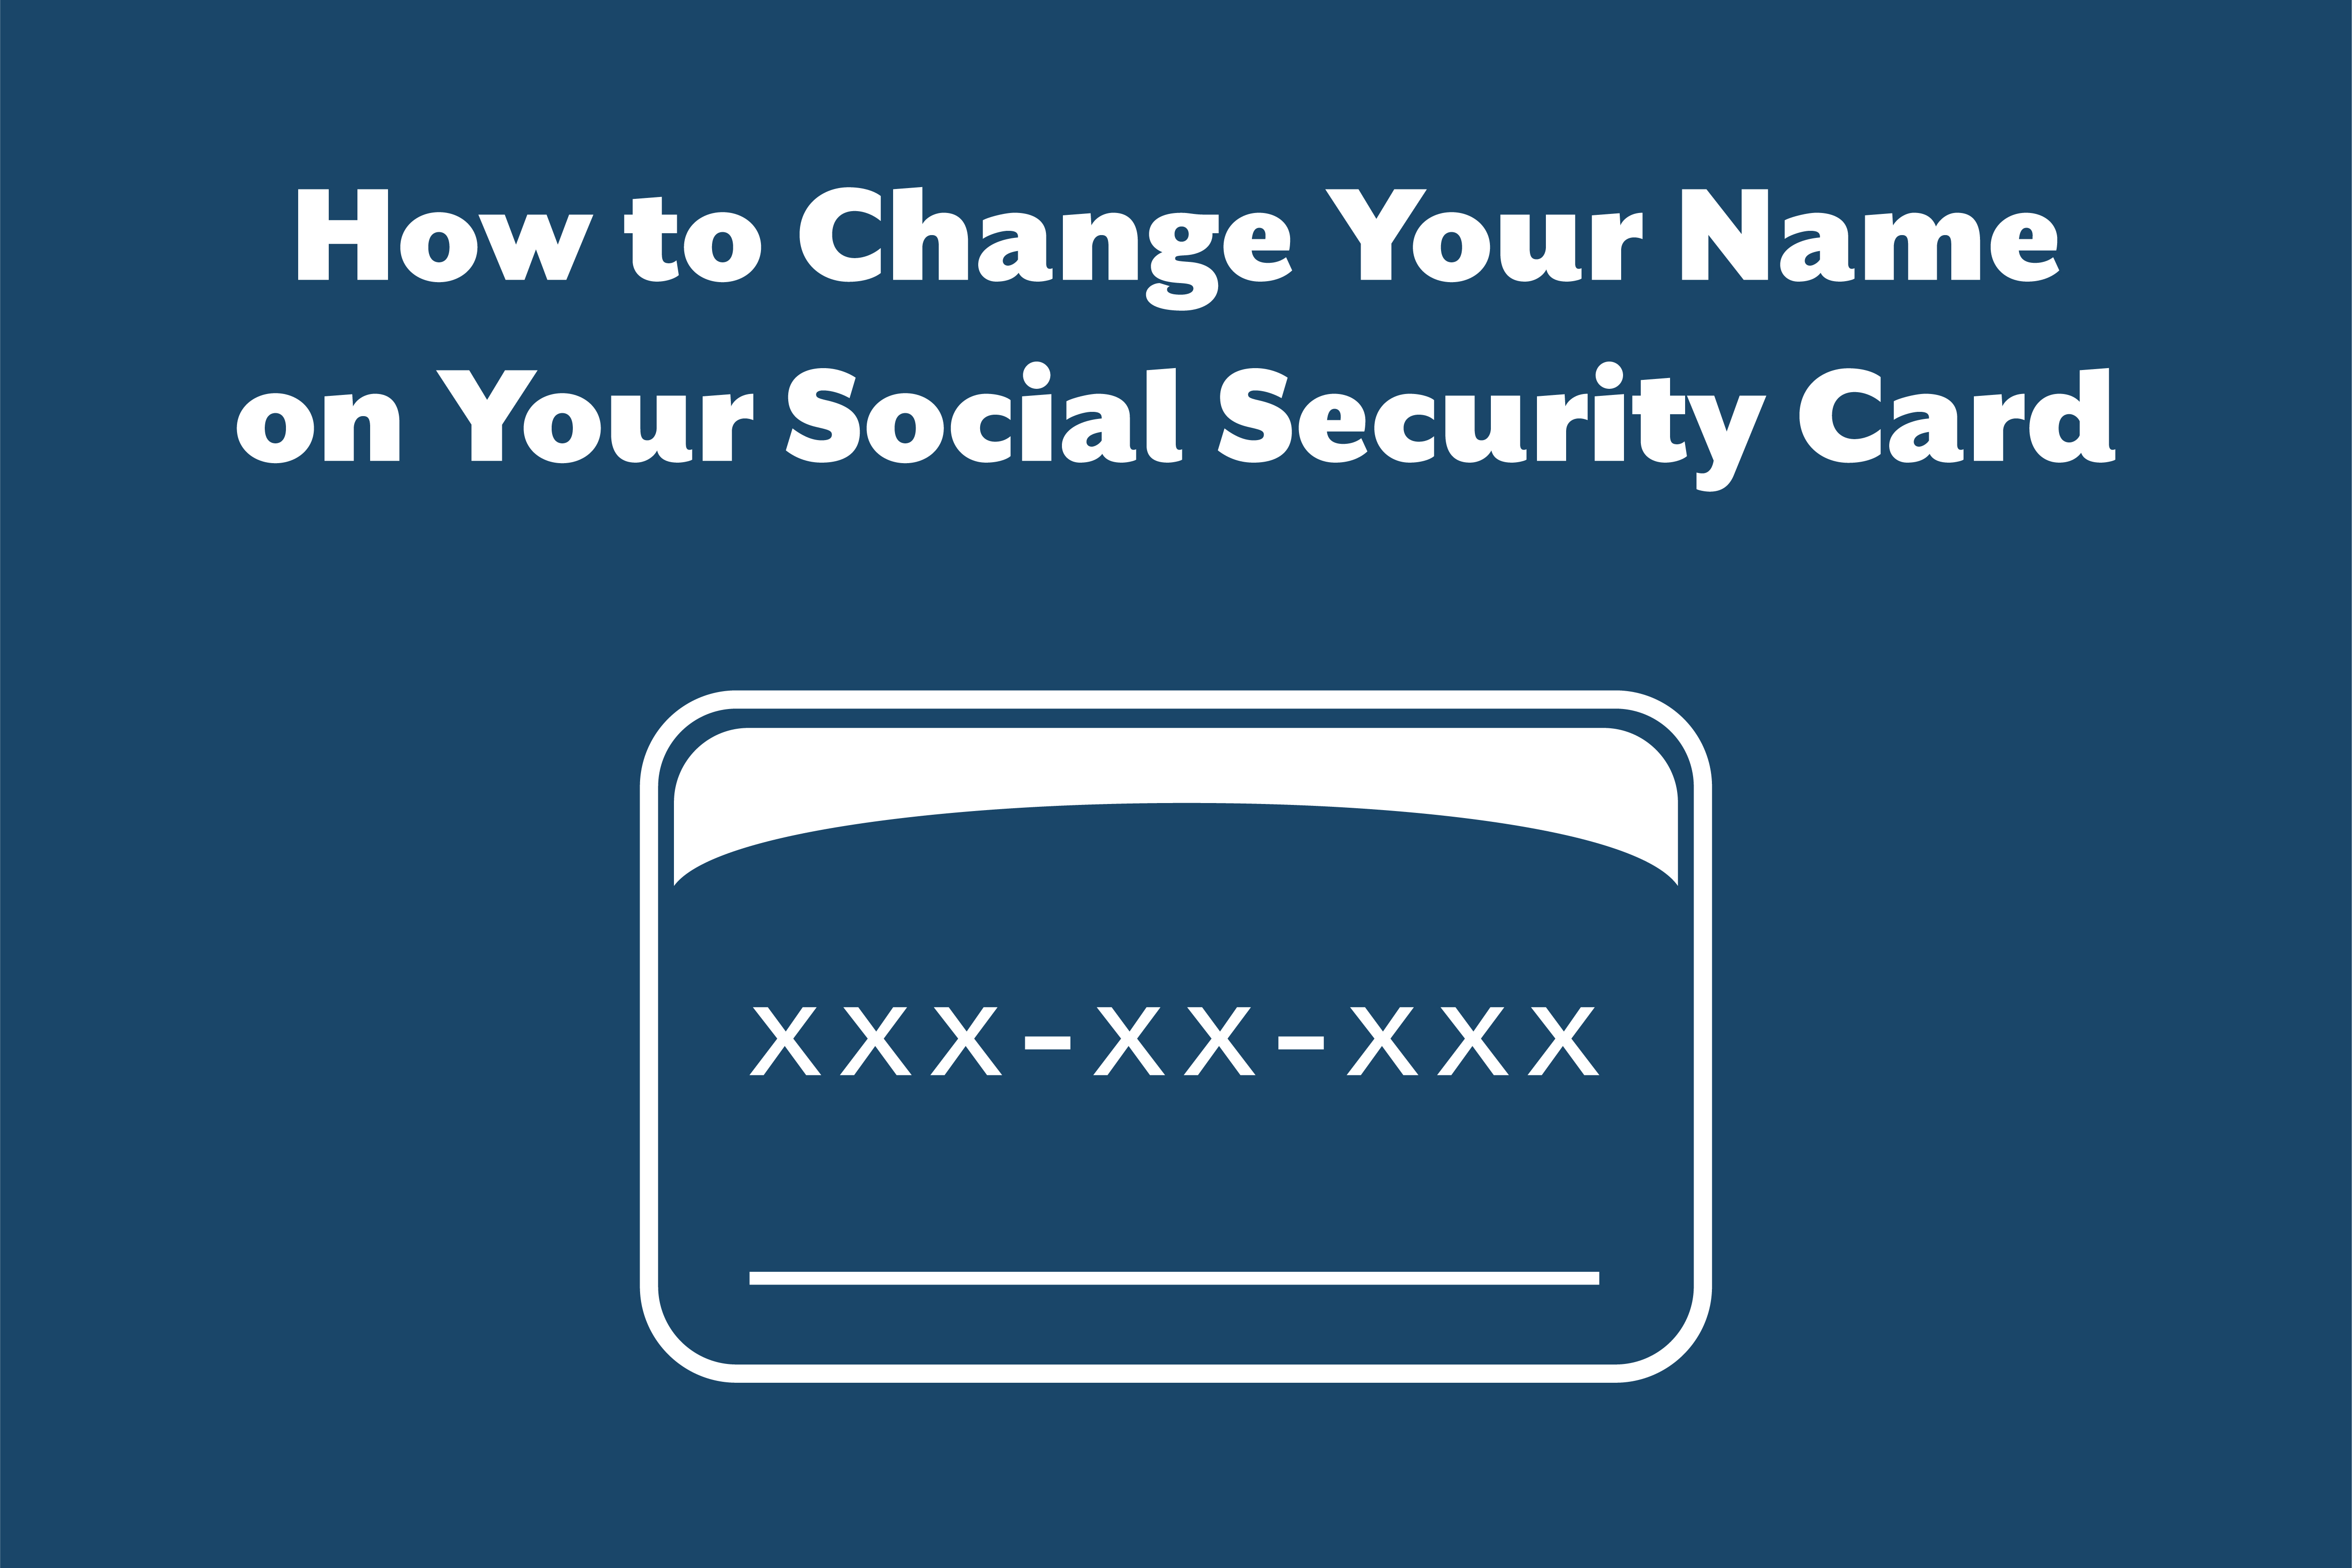 How to Change Your Name on Your Social Security Number Card